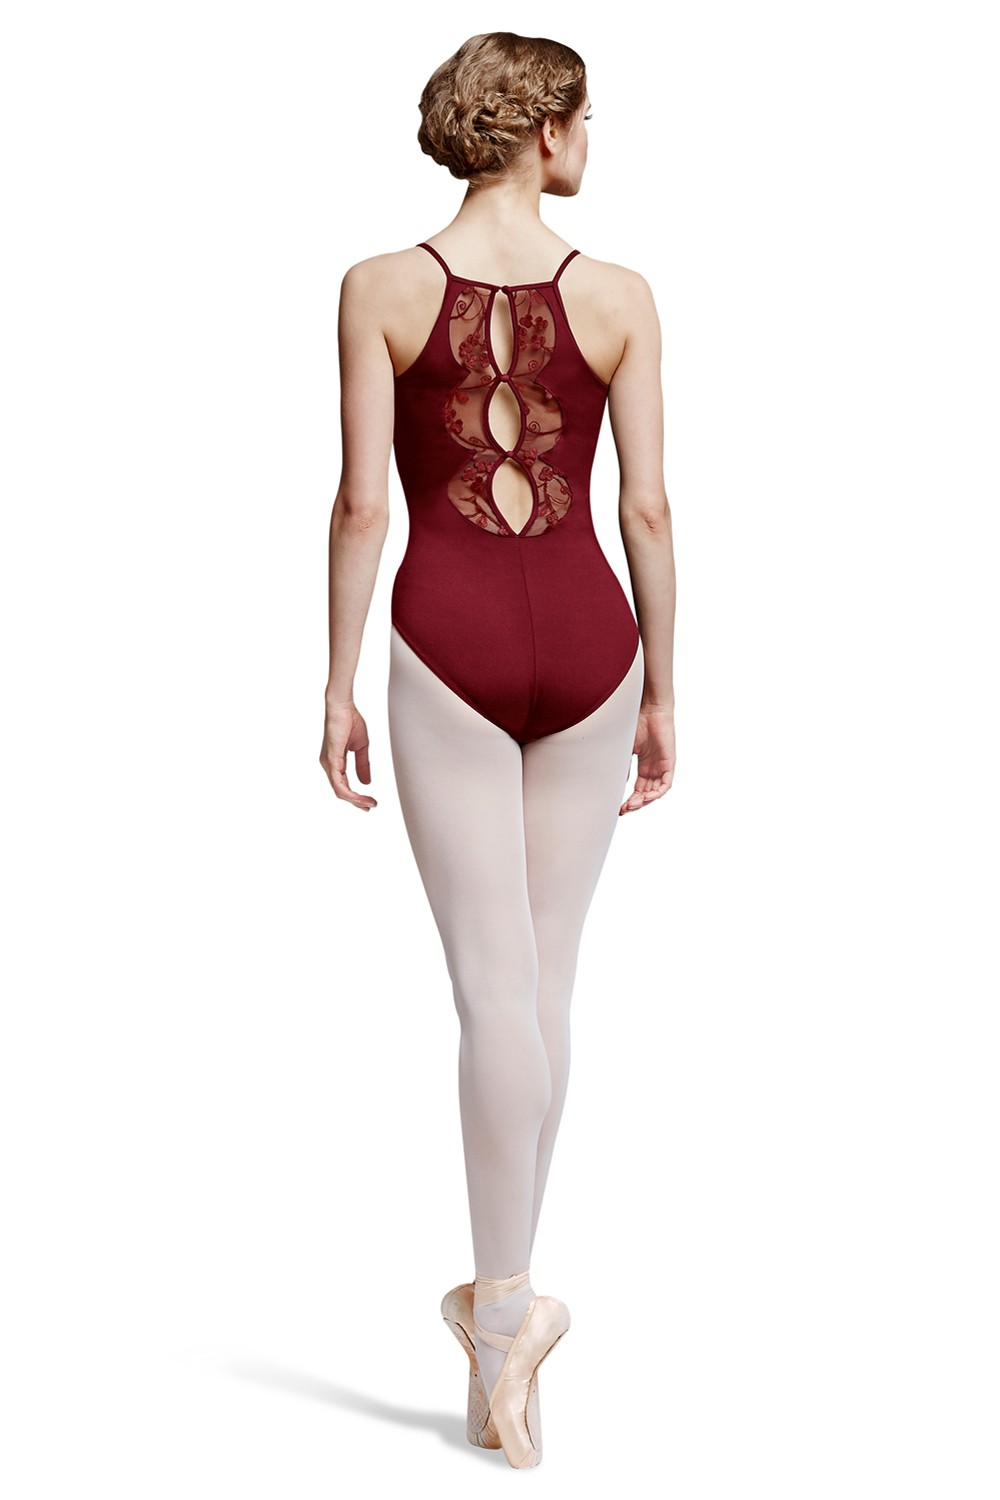 Kauai  Women's Dance Leotards